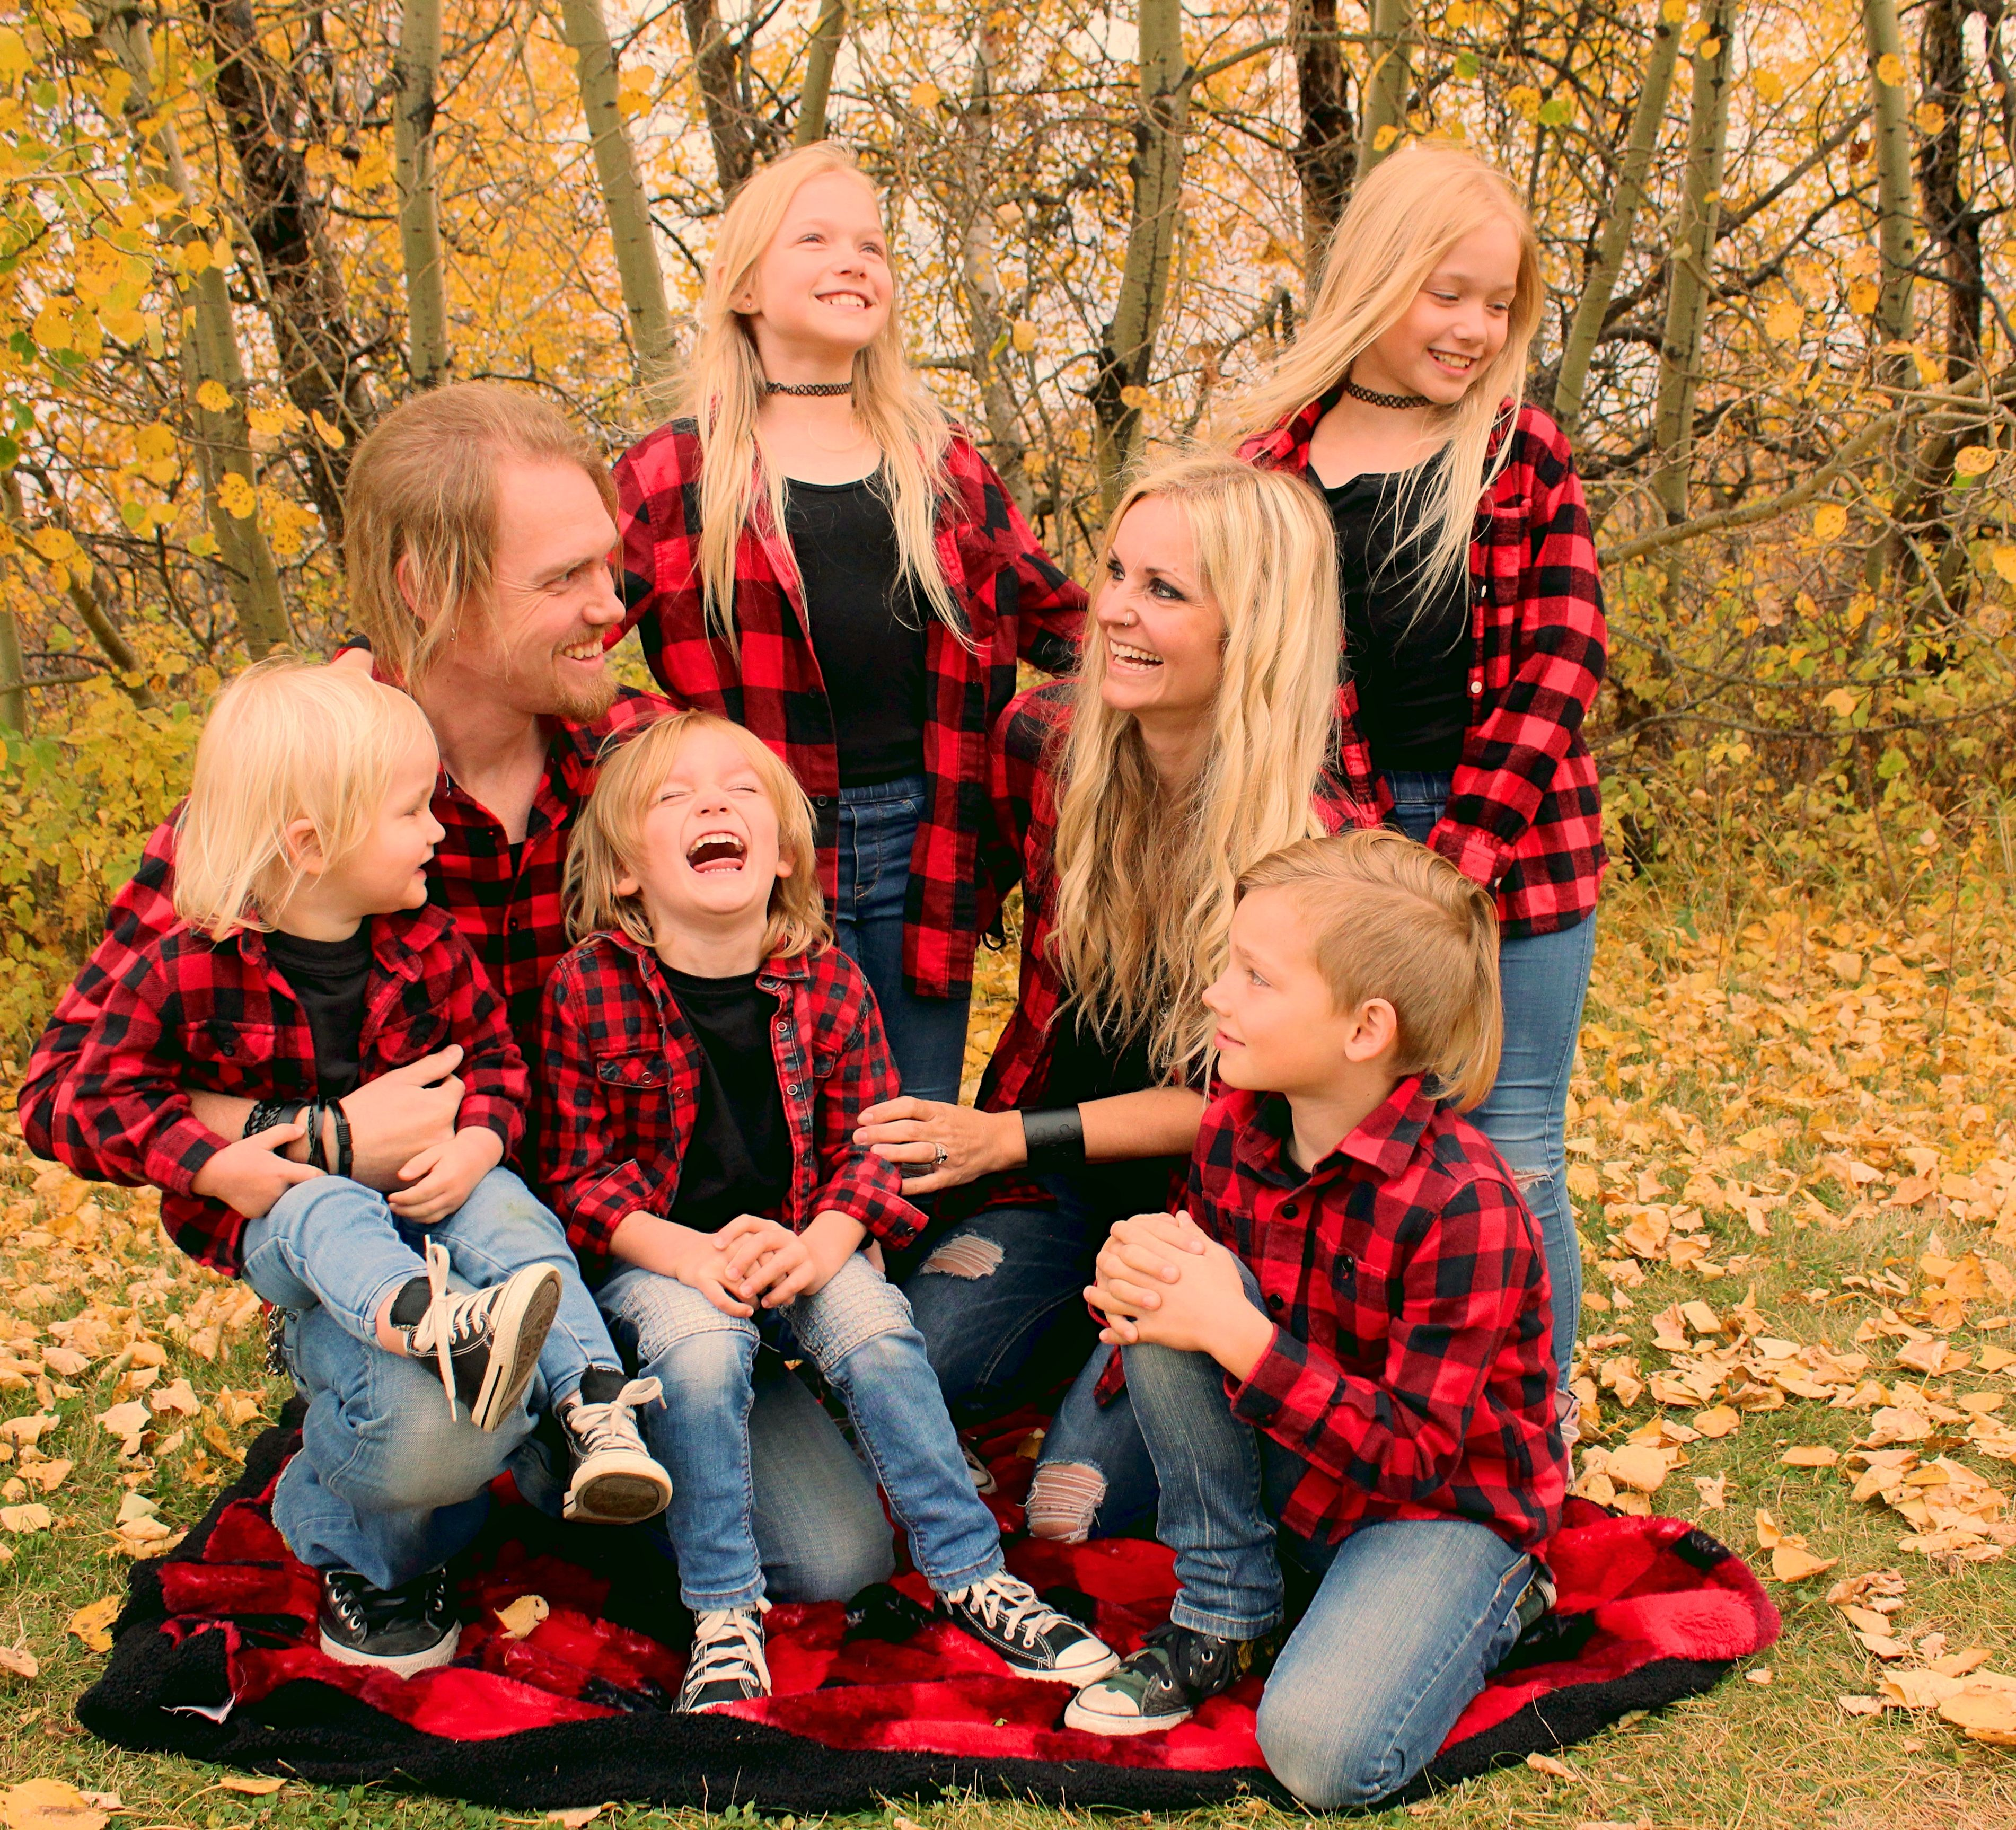 Little boy has the biggest belly laugh as his family tries to pose for a forest shoot